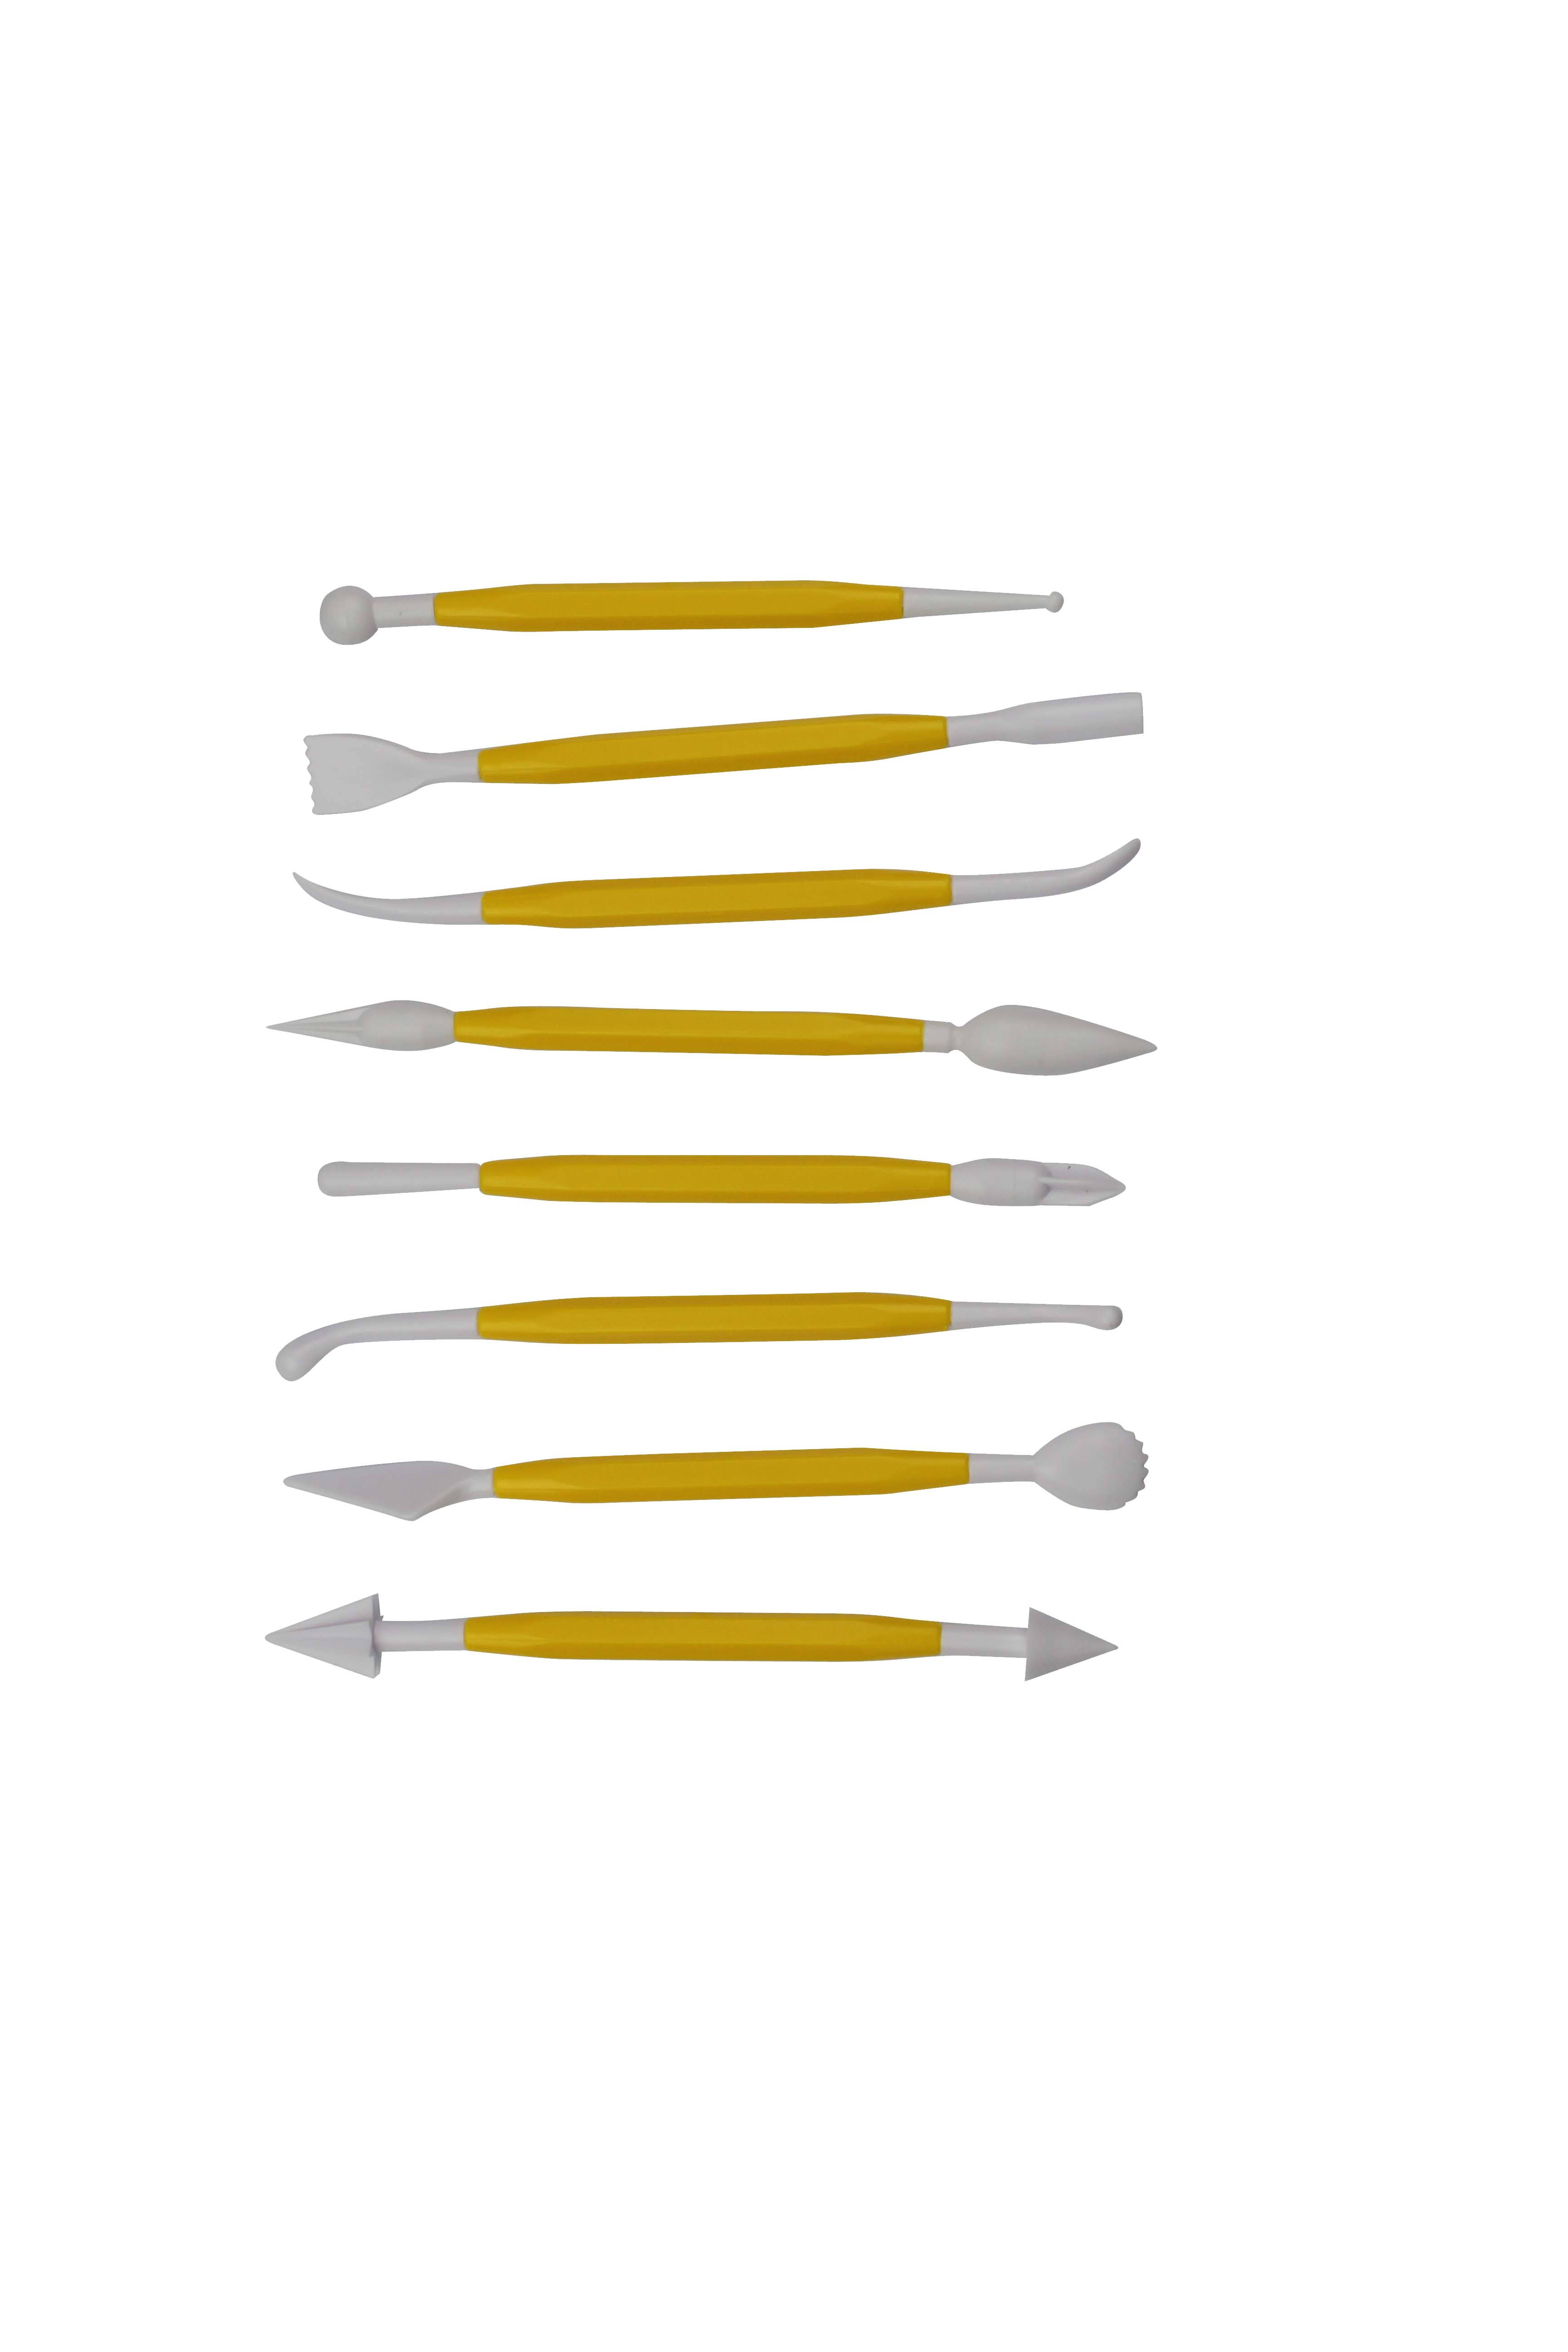 The 8-PCS Durable Clean-up Tool with Value Pack